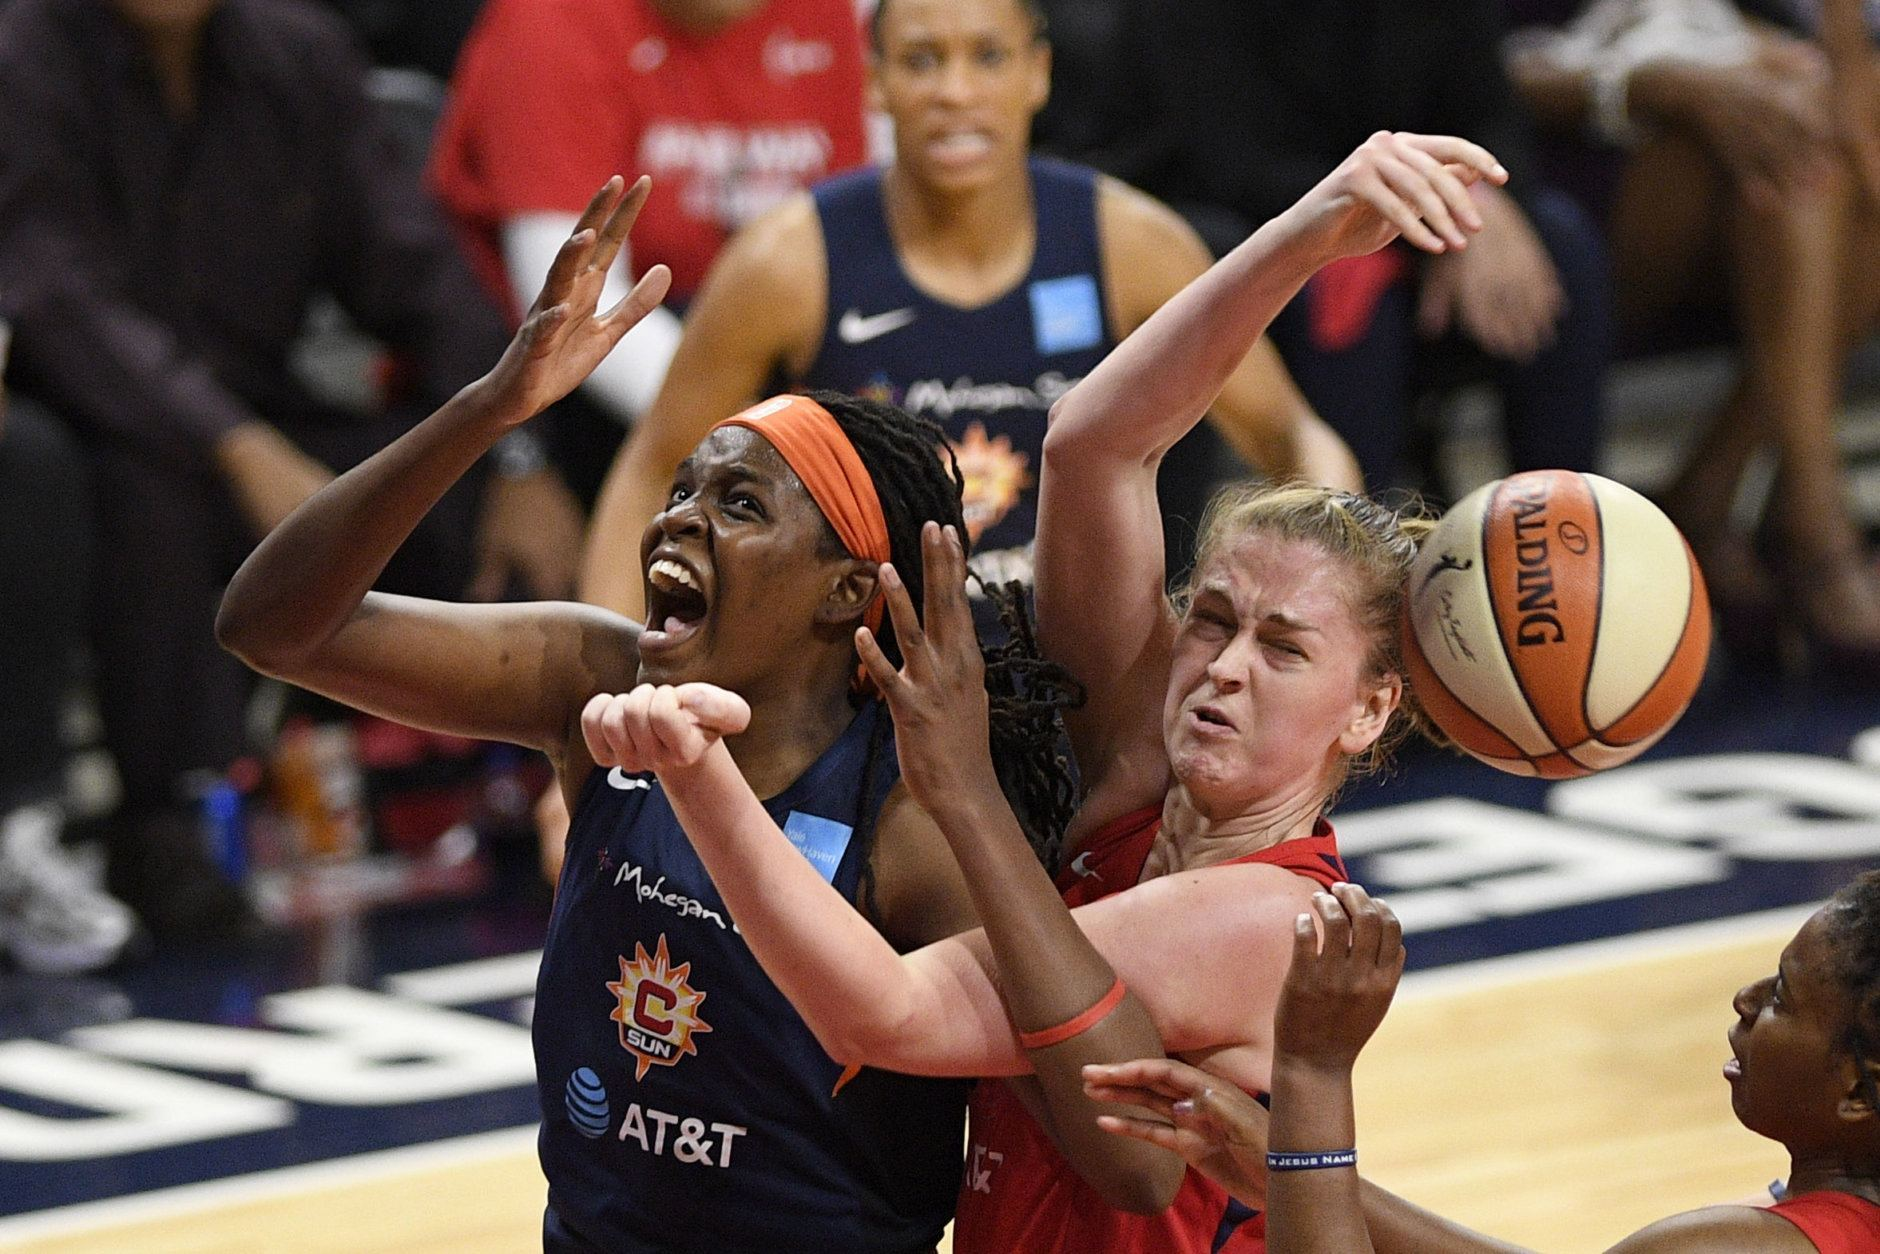 Connecticut Sun forward Jonquel Jones, left, battles for the ball against Washington Mystics center Emma Meesseman, right, in the second half of Game 5 of basketball's WNBA Finals, Thursday, Oct. 10, 2019, in Washington. (AP Photo/Nick Wass)